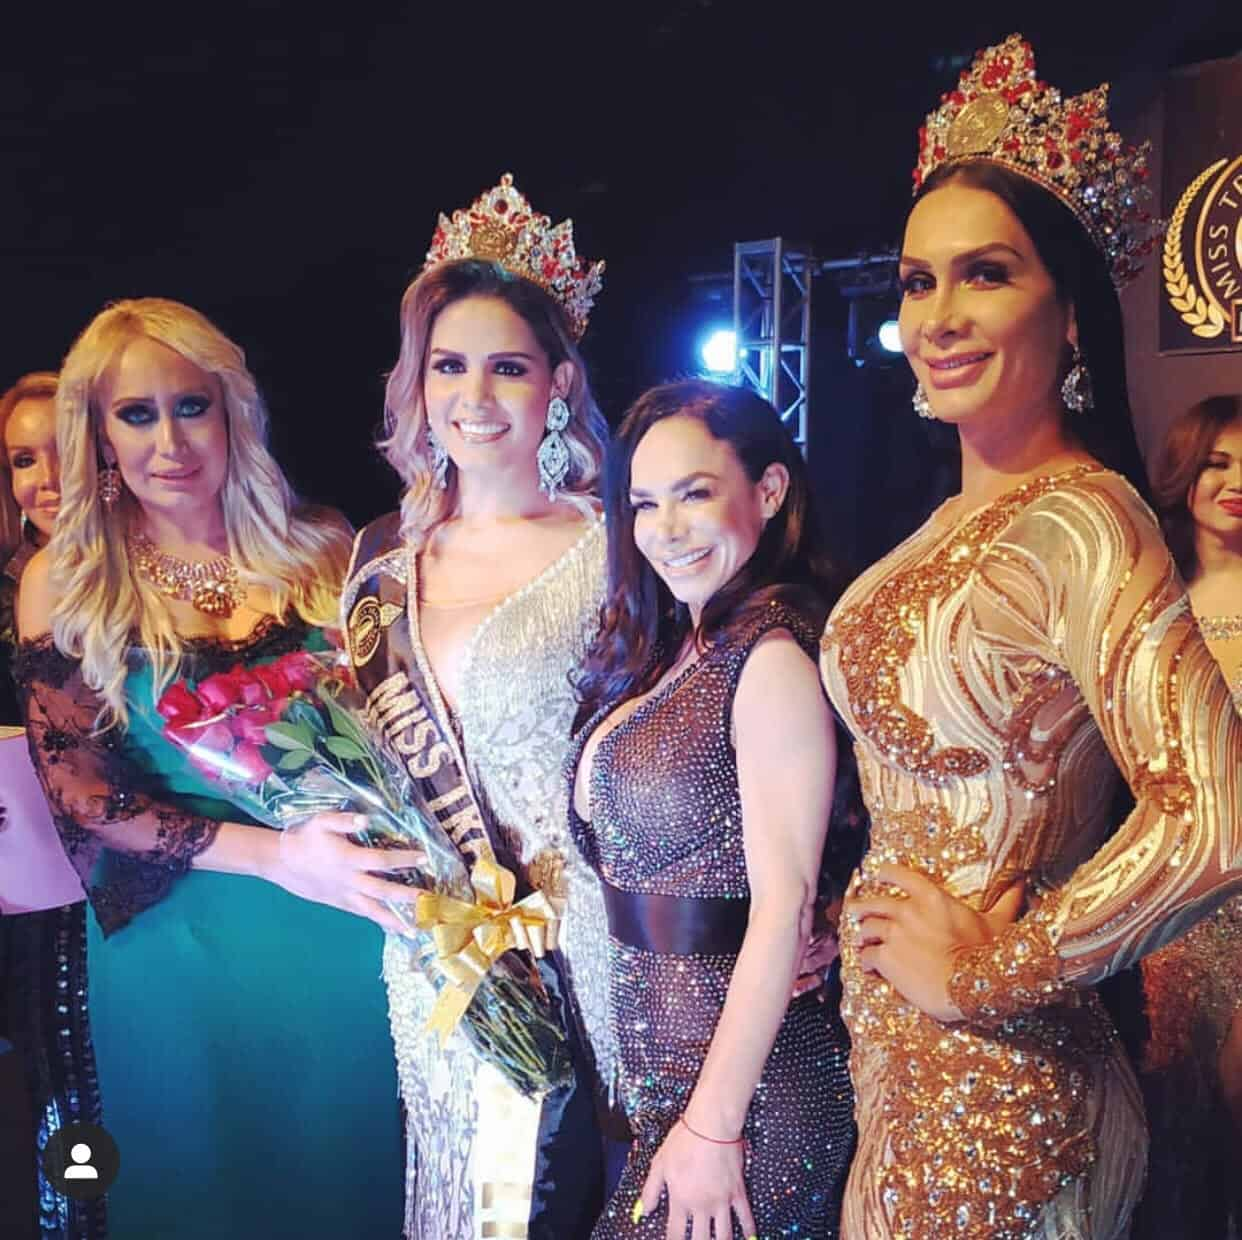 Mexican shemale pics Miss Trans Beauty Mexico 2019 Is Crowned